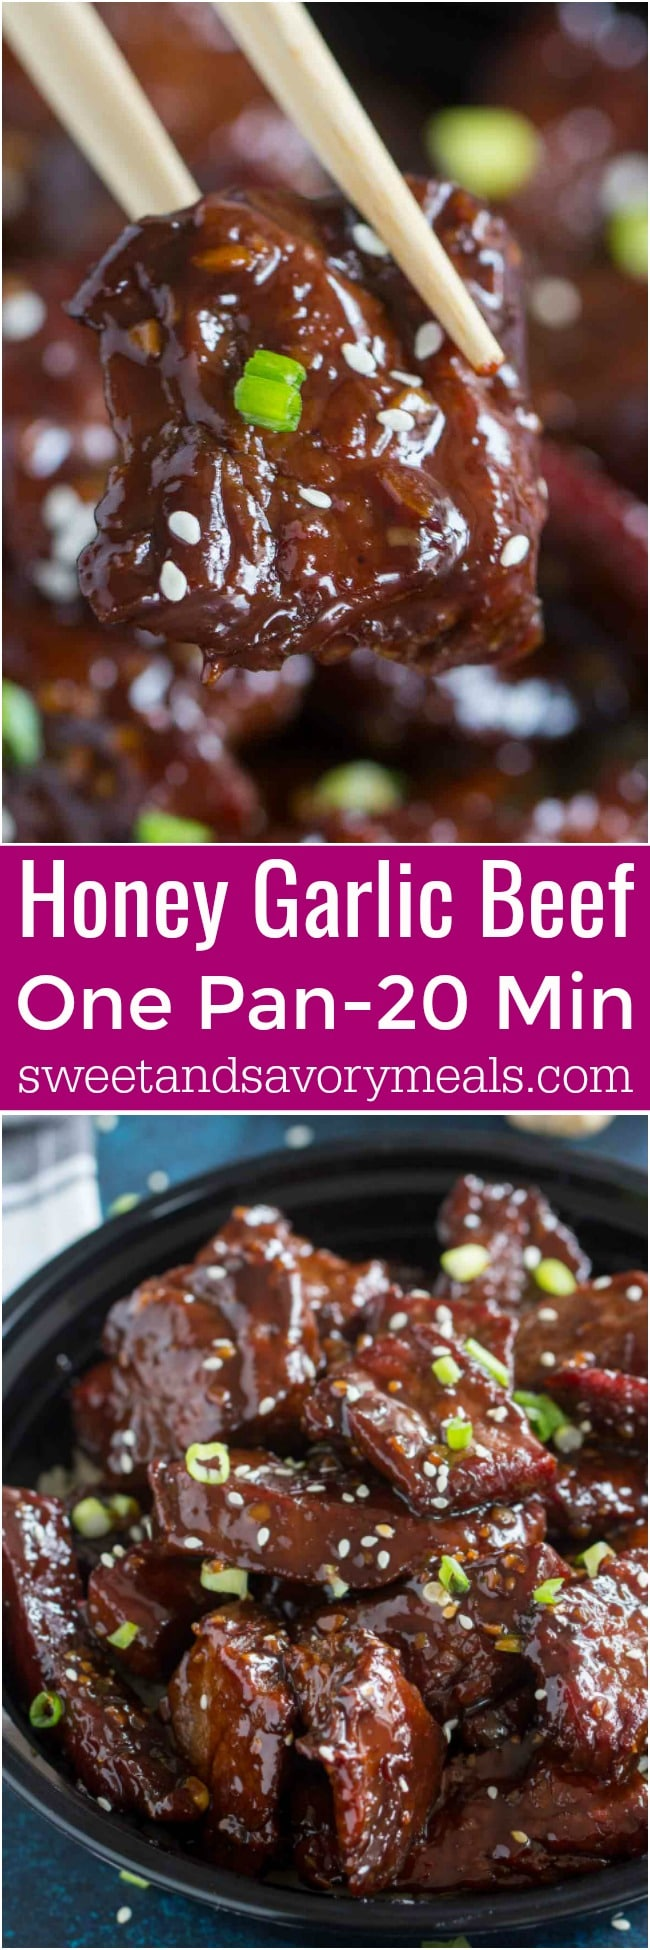 Sticky Honey Garlic Beef made in one pan in just 20 minutes, is full of flavor, made with sweet honey, freshly grated ginger and just a dash of spiciness.